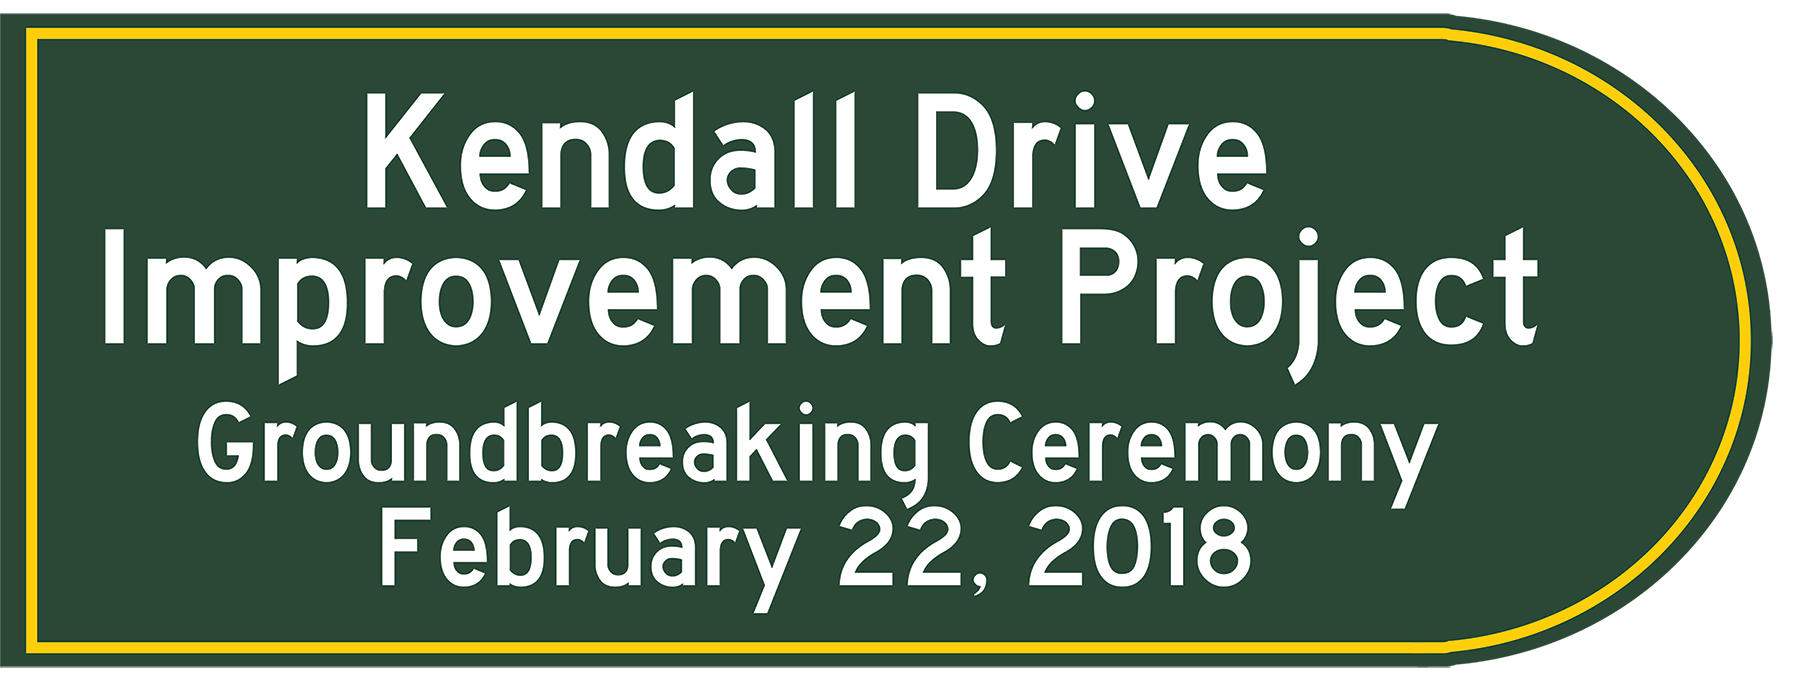 Kendall Drive Groundbreaking Ceremony